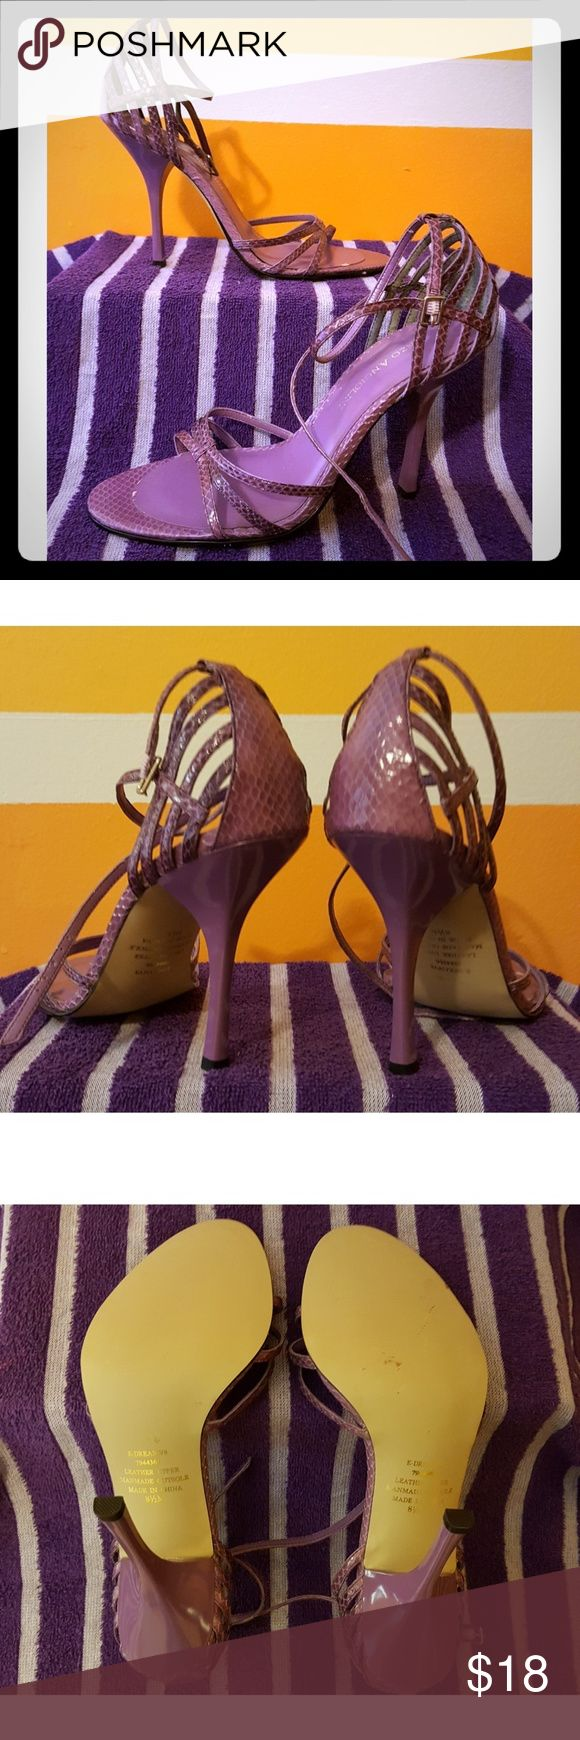 Purple Strappy High Heel Sandals - Enzo Angiolini Beautiful purple strappy high heel dressy shoes, worn 1x indoors, soles have never seen pavement! 8.5m Enzo Angiolini Shoes Heels